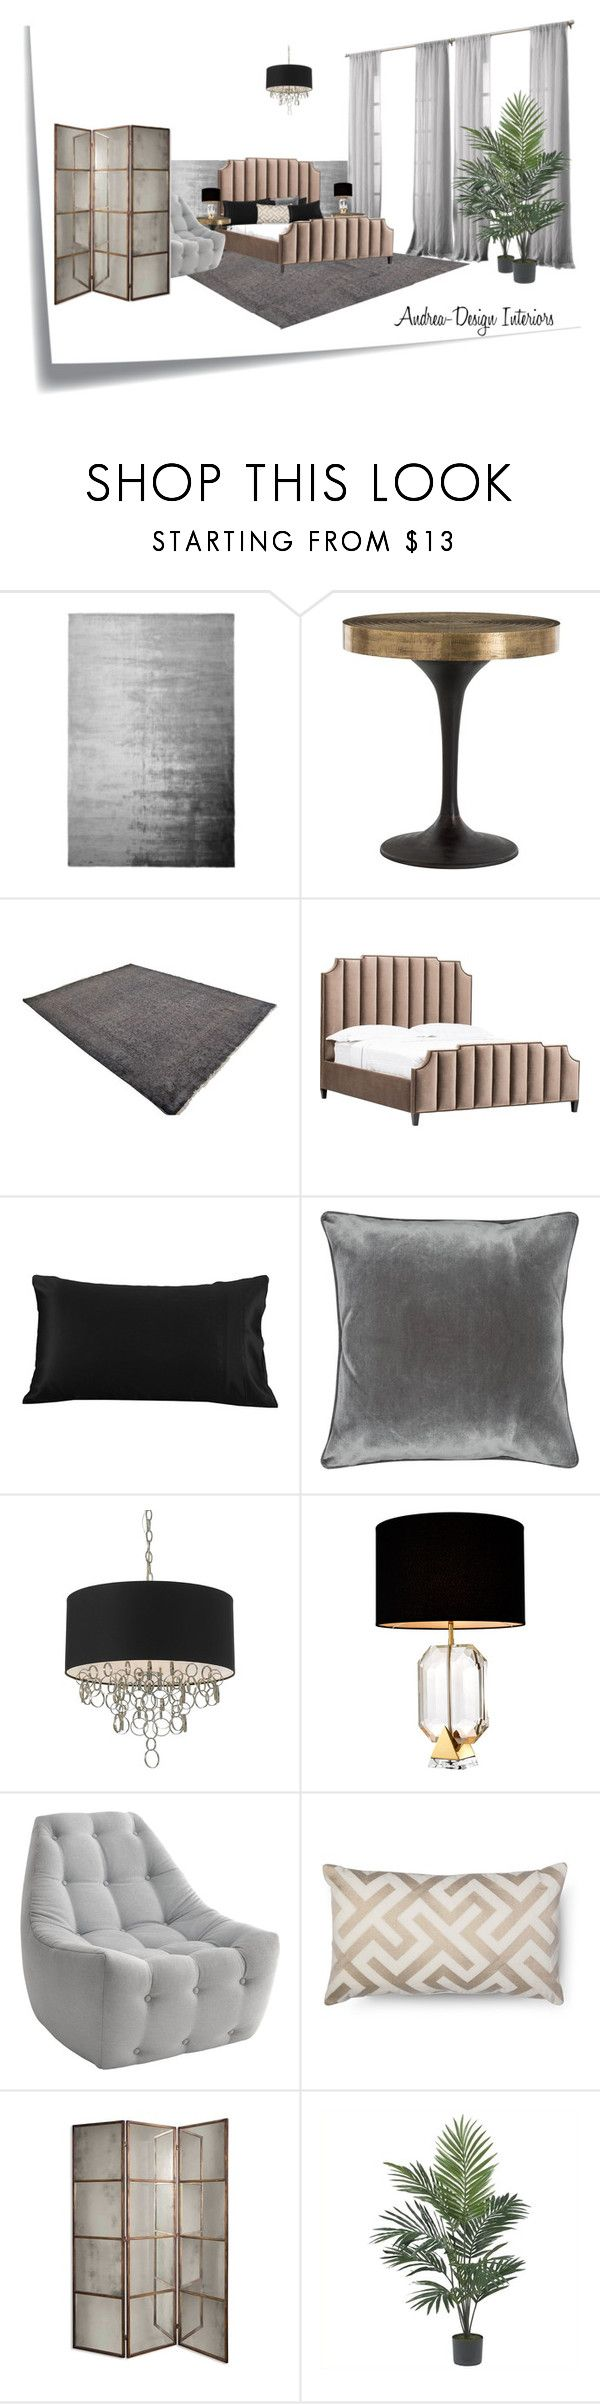 """Bedroom_Buda1"" by andrea-szakos on Polyvore featuring interior, interiors, interior design, home, home decor, interior decorating, Post-It, Designers Guild, Arteriors and M&Co"